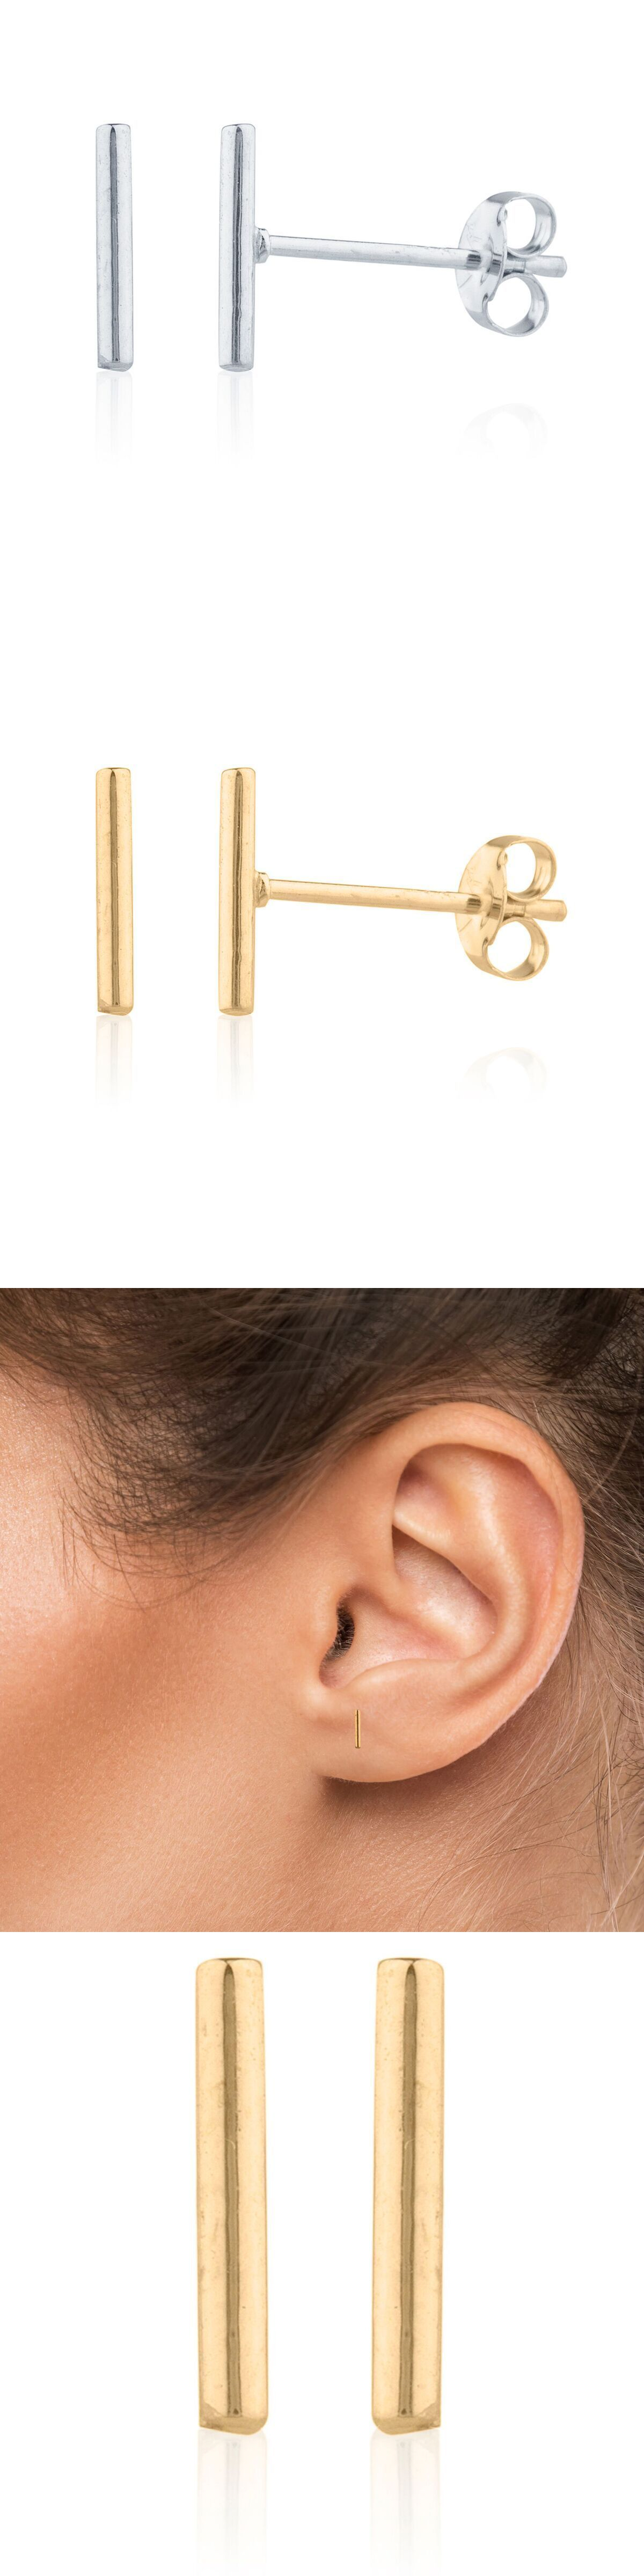 140b30001 Precious Metal without Stones 164319: 14K Solid Yellow White Rose Gold  Plain T Bar Push Back Single Stud Earring 8Mm -> BUY IT NOW ONLY: $24.99 on  eBay!